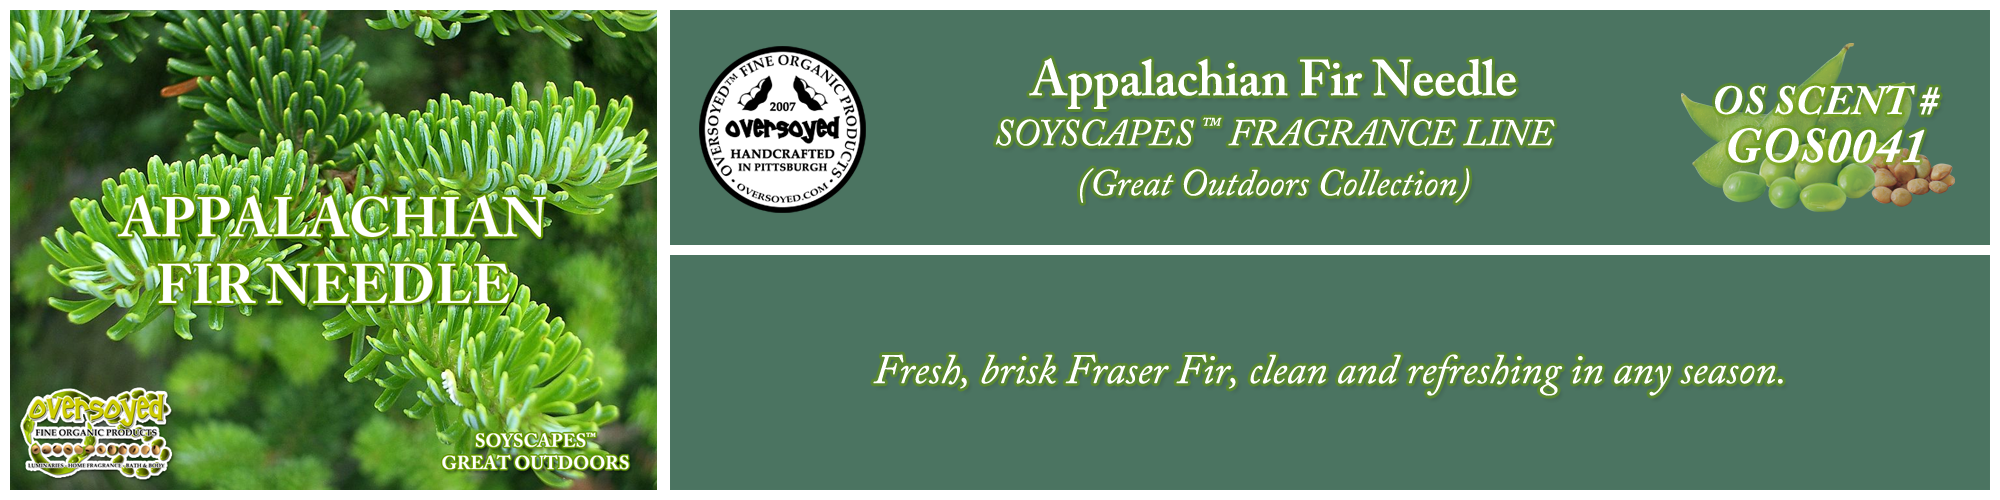 Appalachian Fir Needle Handcrafted Products Collection